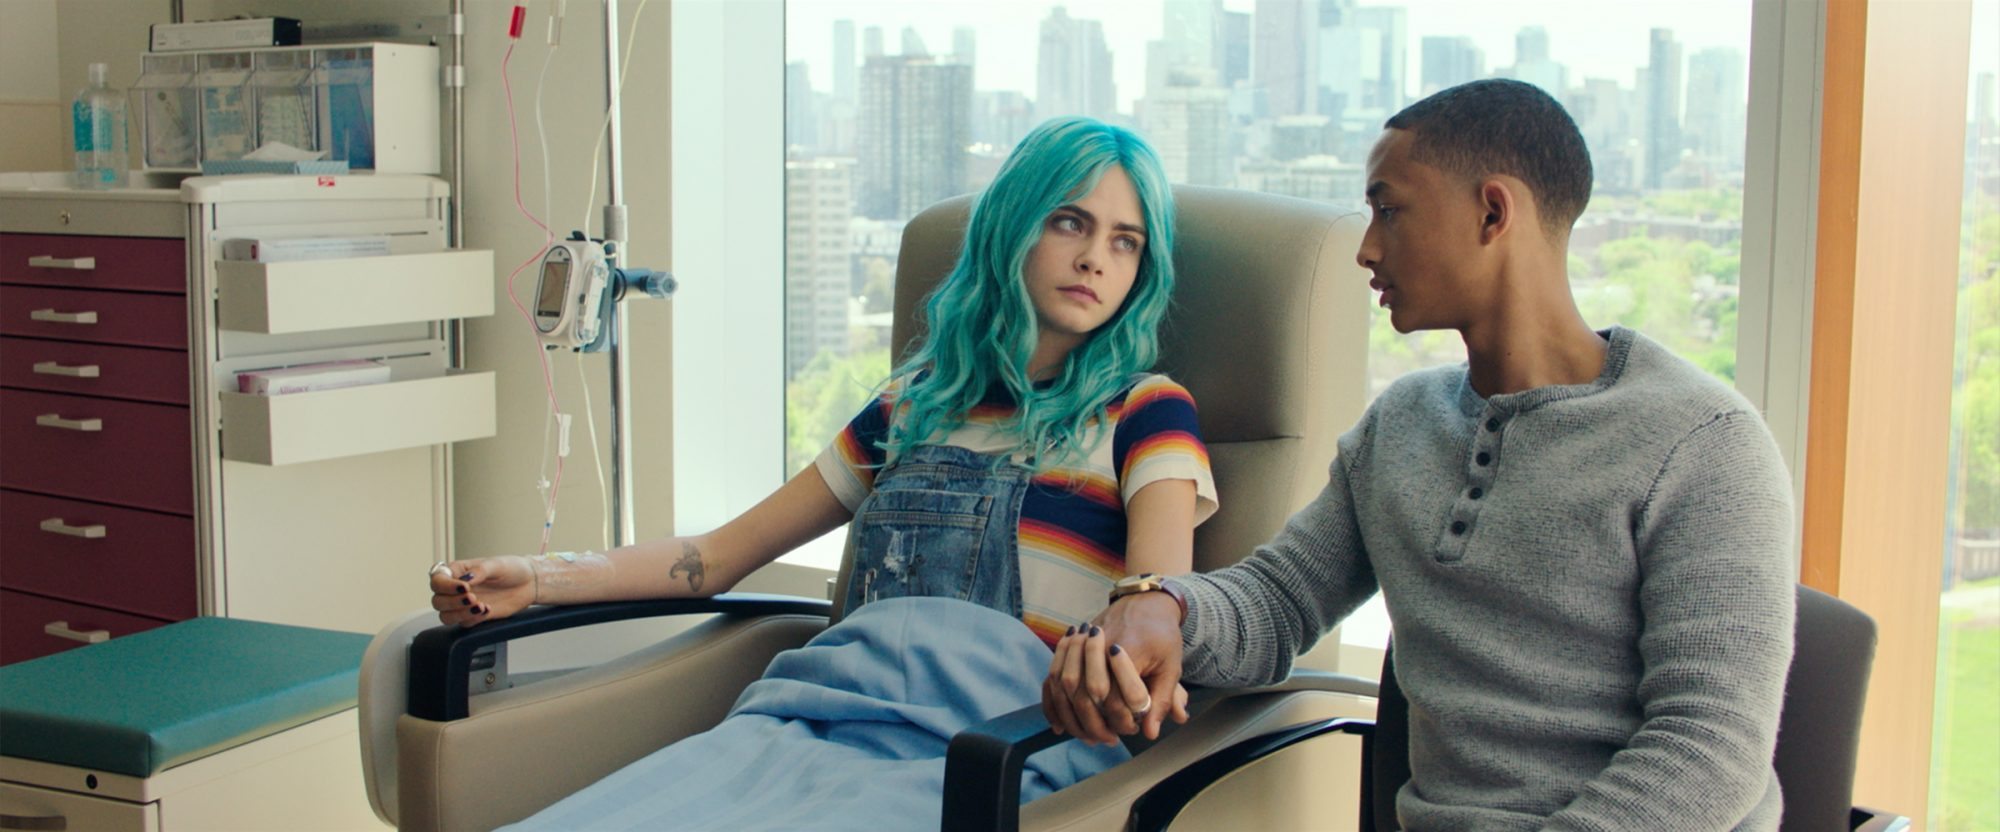 Cara Delevingne and Jaden Smith Star in Life in a Year Trailer | PEOPLE.com